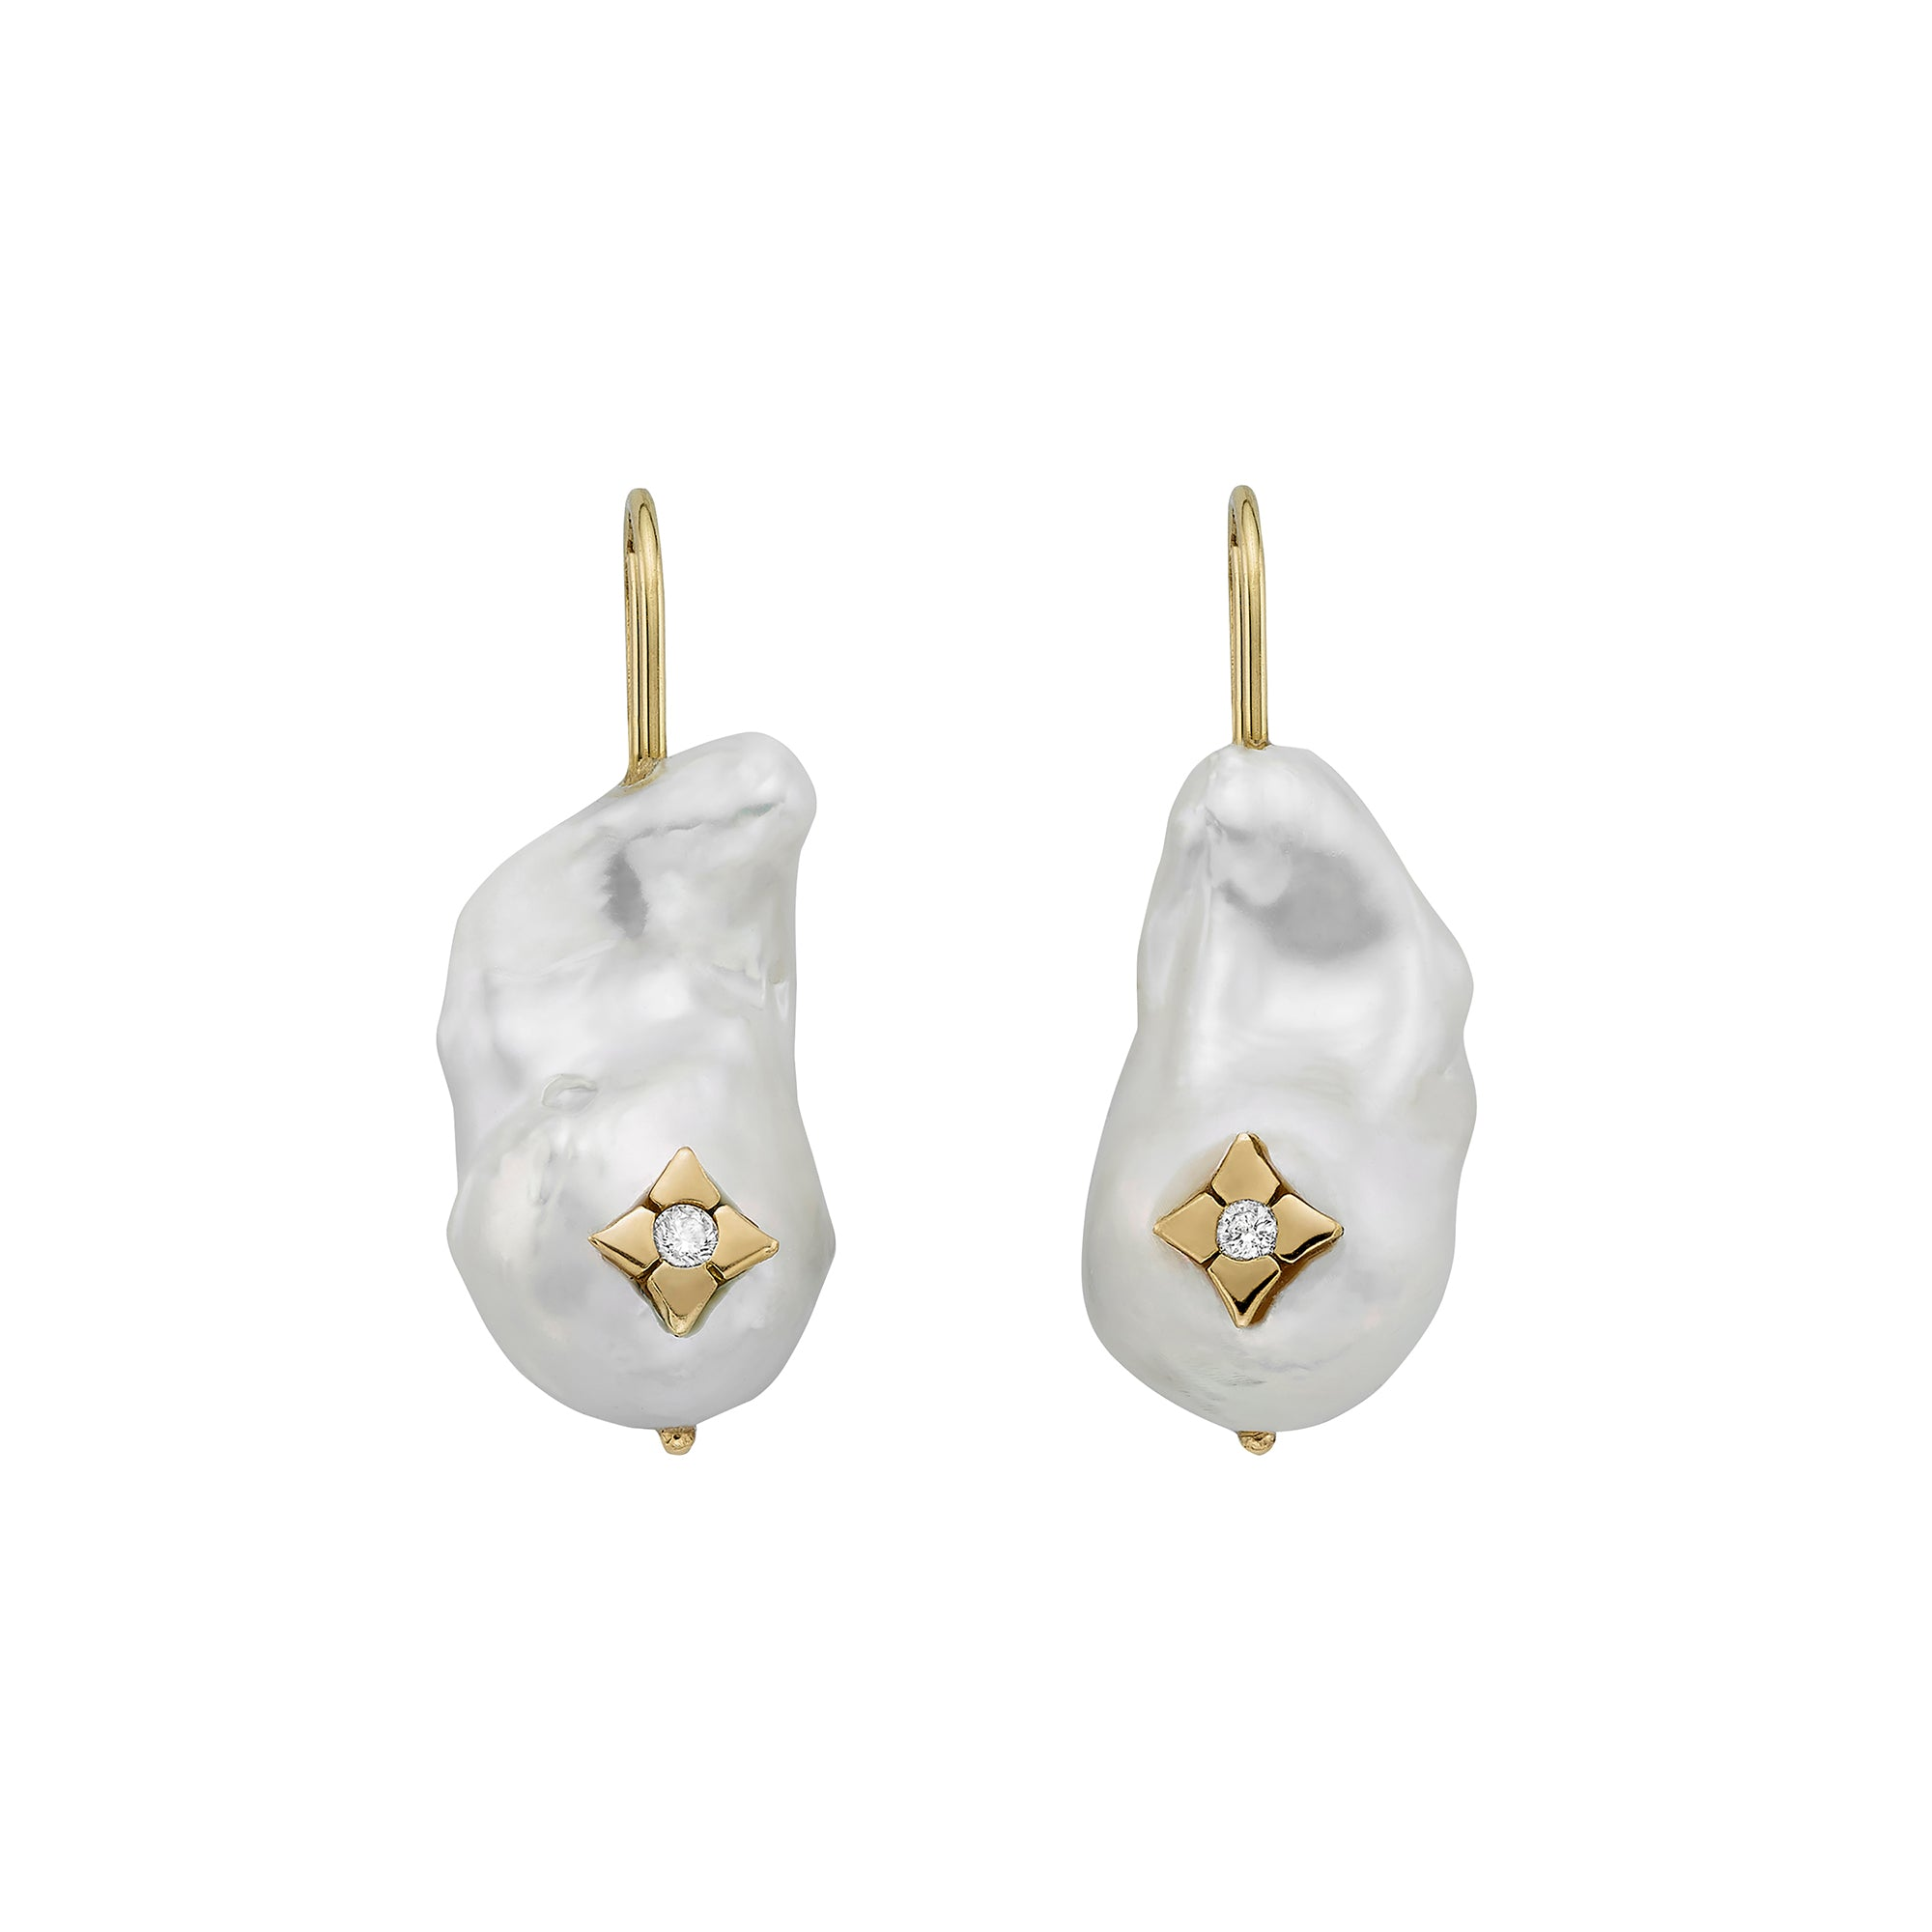 Baroque Clover Inlay Earrings - Ilene Joy - Earrings | Broken English Jewelry